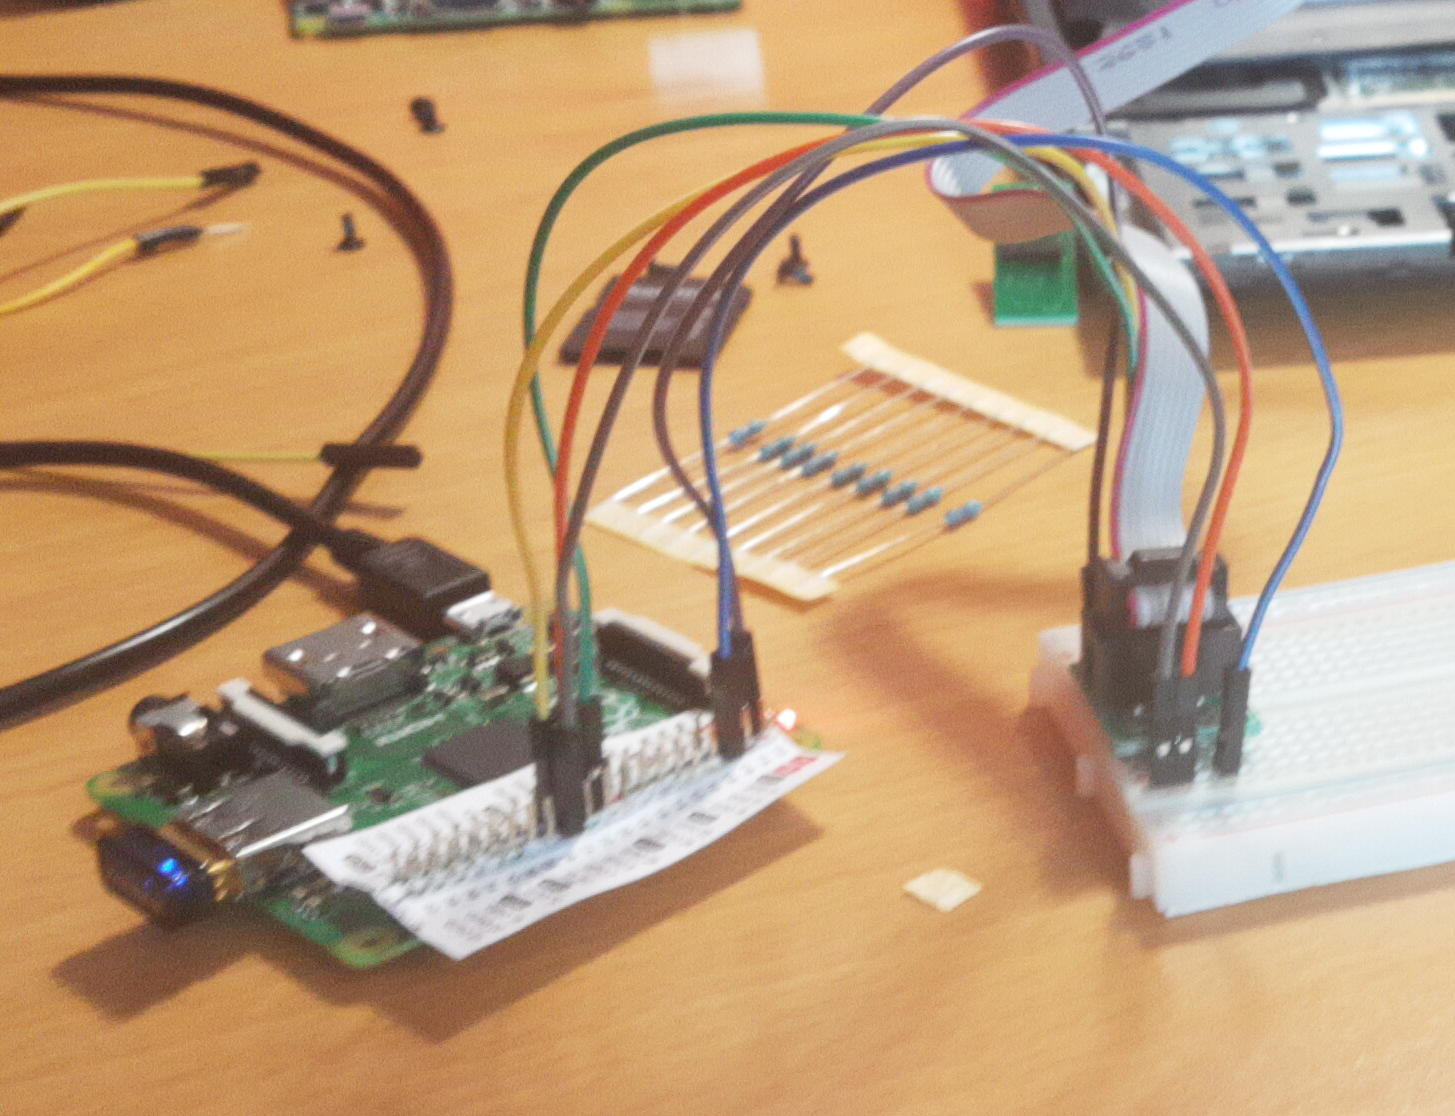 SPI Programmer with a Raspberry Pi A+